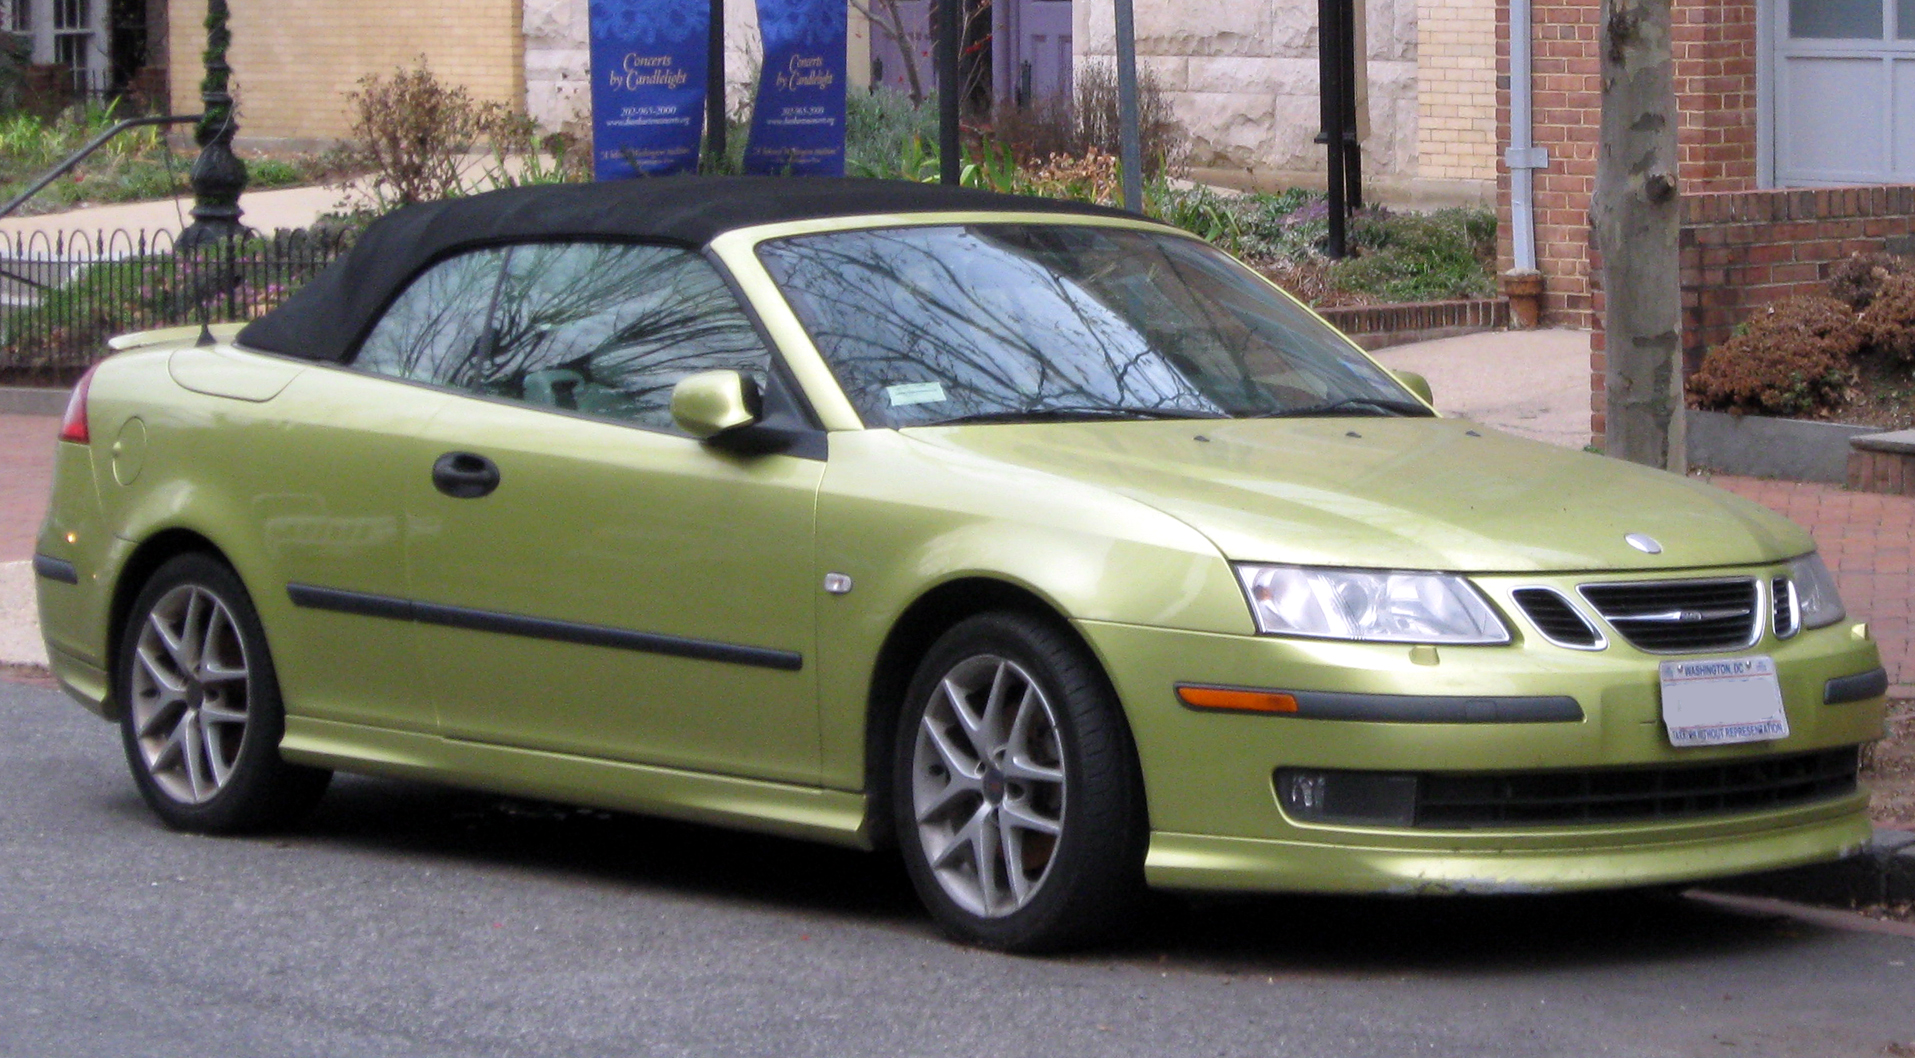 26 FUEL Oxygen Sensor Replacement likewise Ford 6 0 Crank Position Sensor Location further Gm 2004 11 Saab 9 3 Convertibles Recalled 28789 For Seatbelt Problem likewise Engine furthermore Mk II. on 2005 saab 9 3 problems